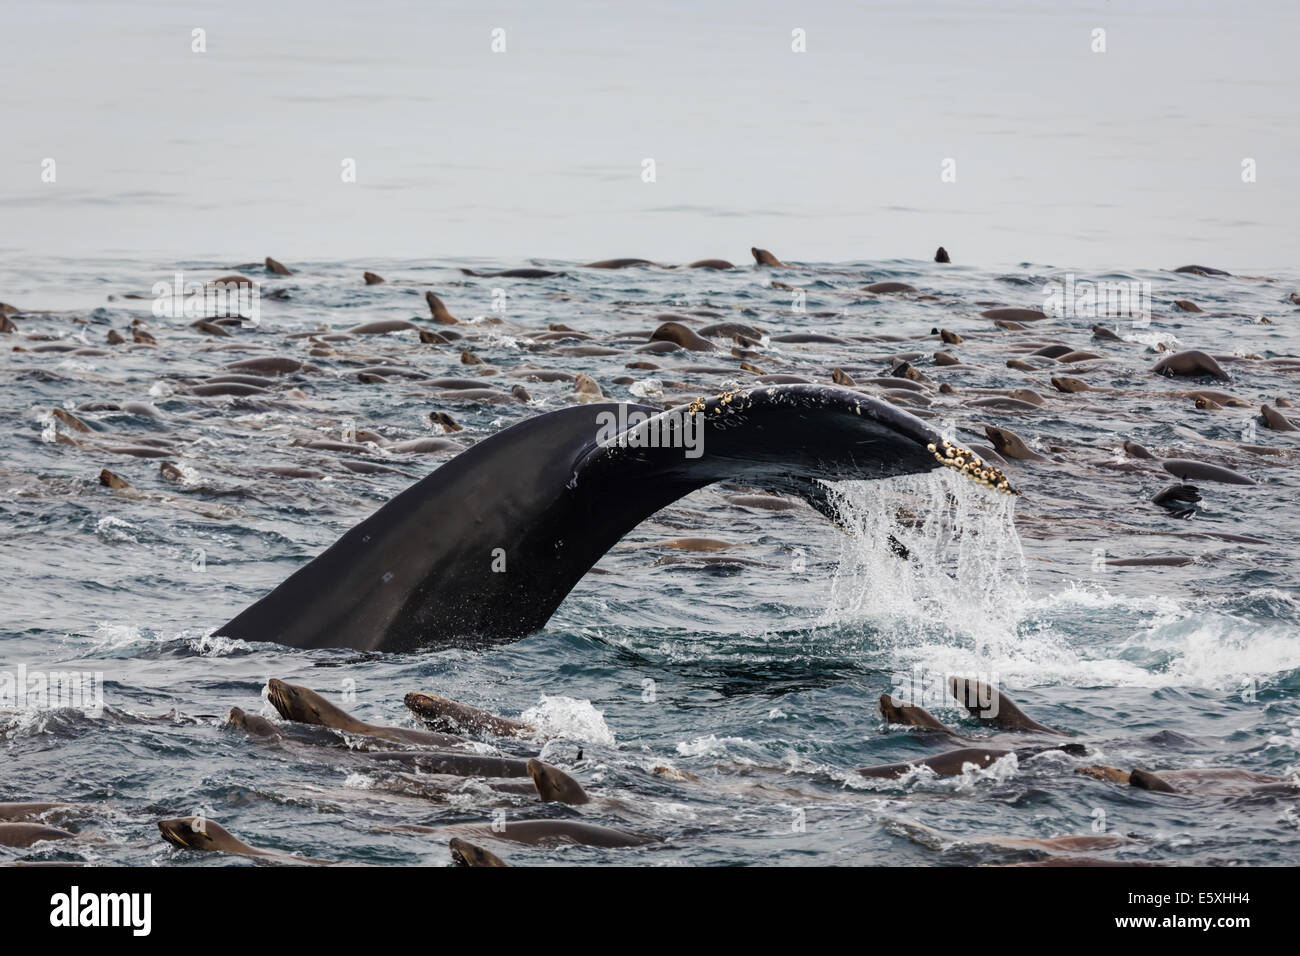 Humpback whale lobtailing with tail exposed and sea lions swarming around - Stock Image